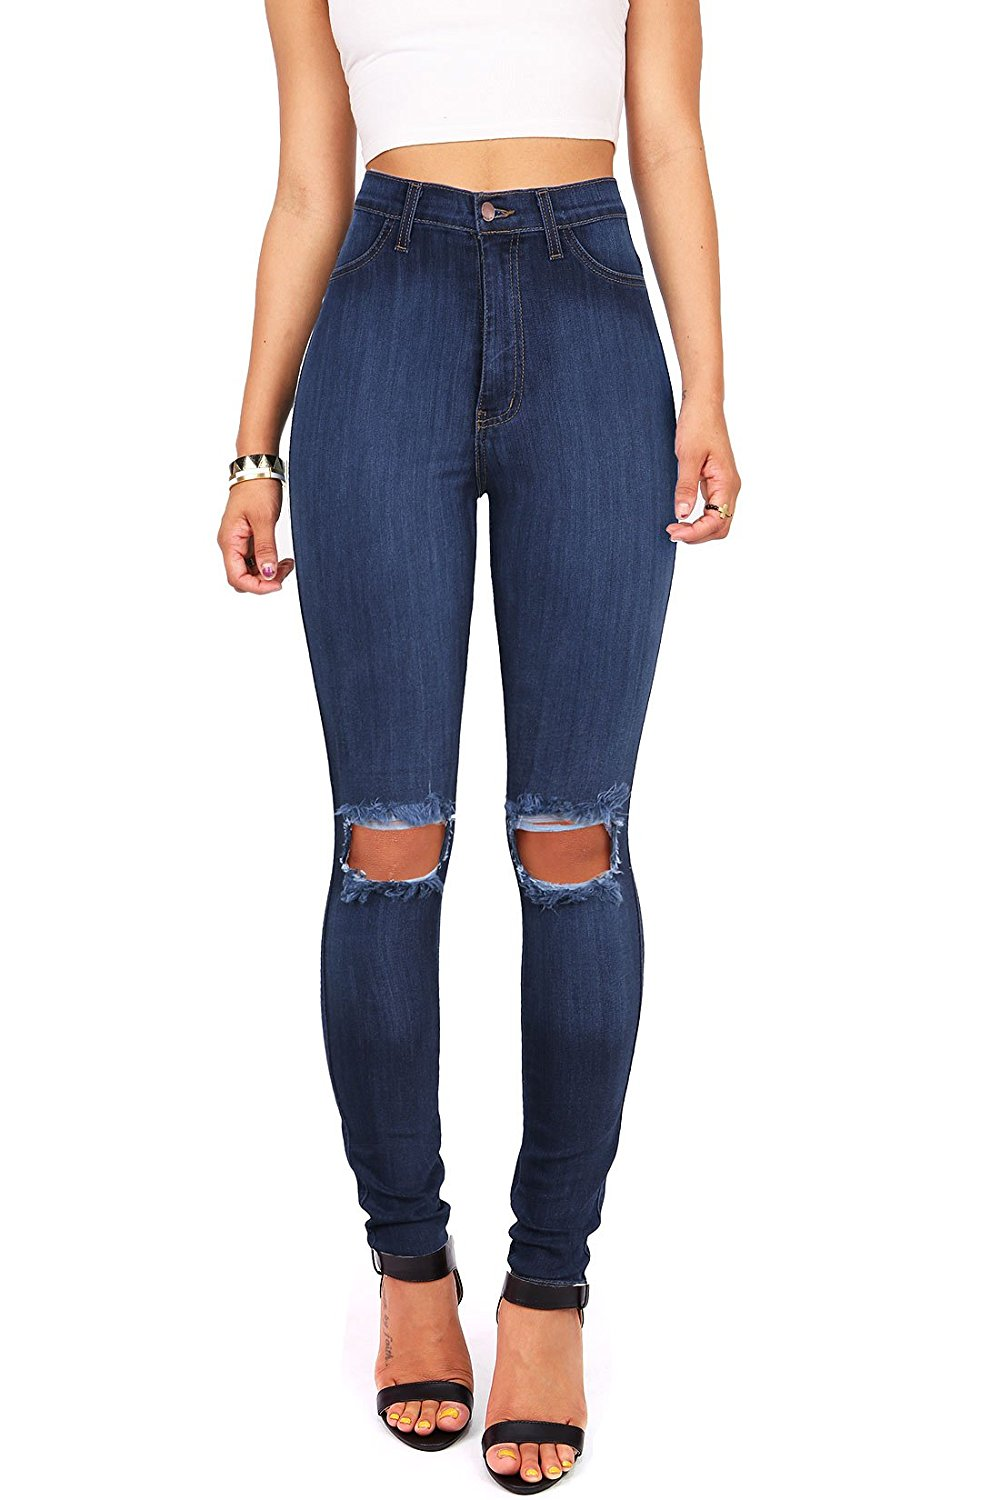 f6d1256ad62c2c Vibrant Women's Juniors Faded Ripped Knee High Waist Skinny Jeans at Amazon  Women's Jeans store